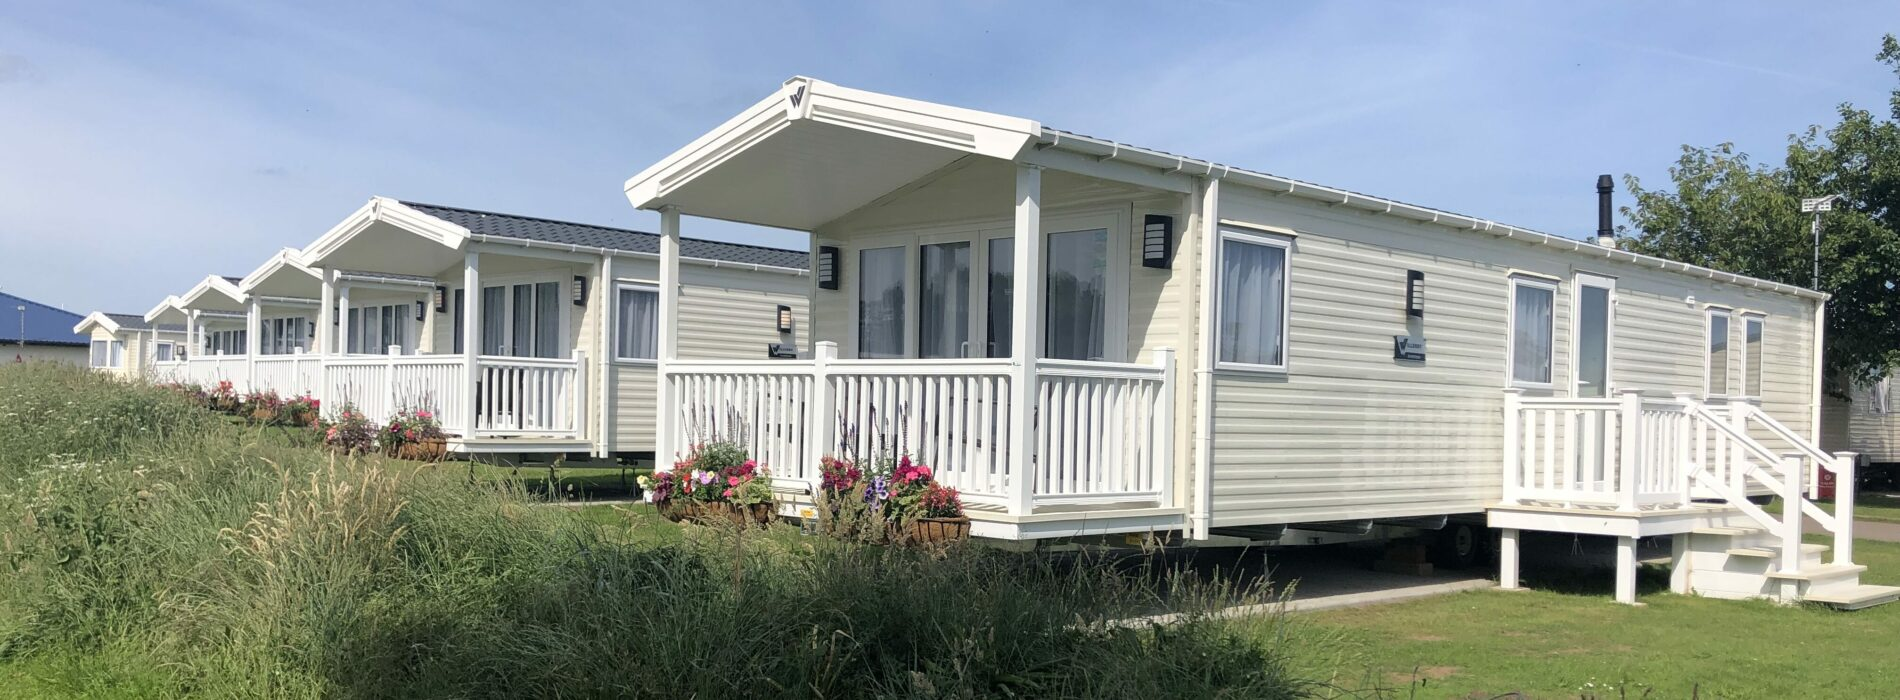 We review new accessible caravan open at Belle Aire Holiday Park